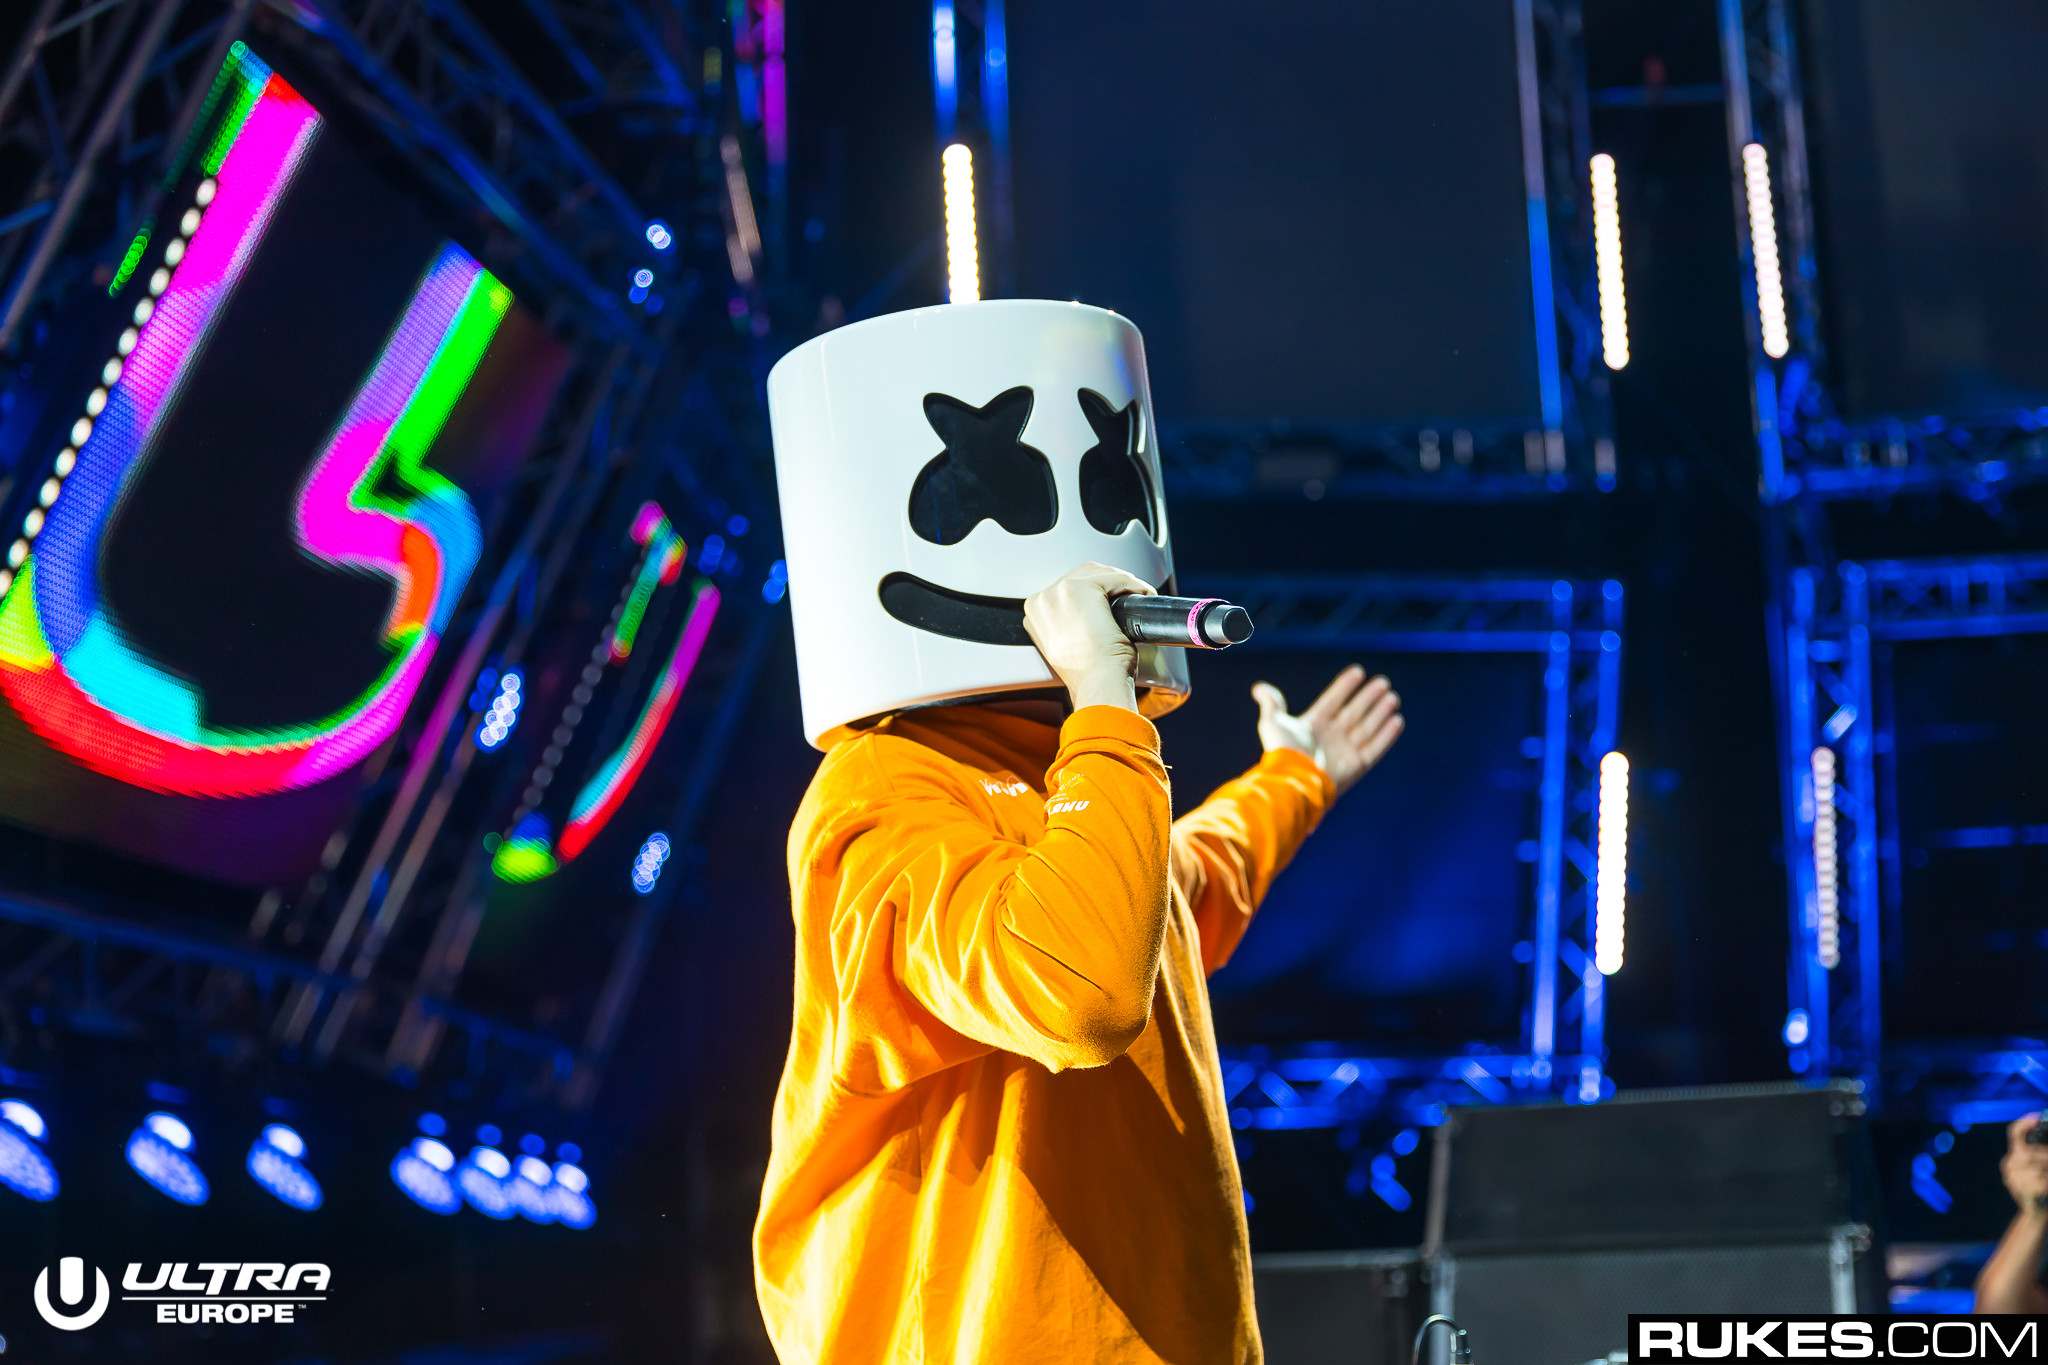 "marshmello ""srcset ="" https://www.youredm.com/wp-content/uploads/2018/07/marshmello-so-whats-the-deal-with-airplane-food-ultra-europe-2018-rukes.jpg 2048w, https://www.youredm.com/wp-content/uploads/2018/07/marshmello-so-whats-the-deal-with-airplane-food-ultra-europe-2018-rukes-768x512.jpg 768w https://www.youredm.com/wp-content/uploads/2018/07/marshmello-so-whats-the-deal-with-airplane-food-ultra-europe-2018-rukes-1024x683.jpg 1024w, https://www.youredm.com/wp-content/uploads/2018/07/marshmello-so-whats-the-deal-with-airplane-food-ultra-europe-2018-rukes-360x240.jpg 360w ""tamaños = ""(ancho máximo: 2048px) 100vw, 2048px"" /></div> </div> <section class="